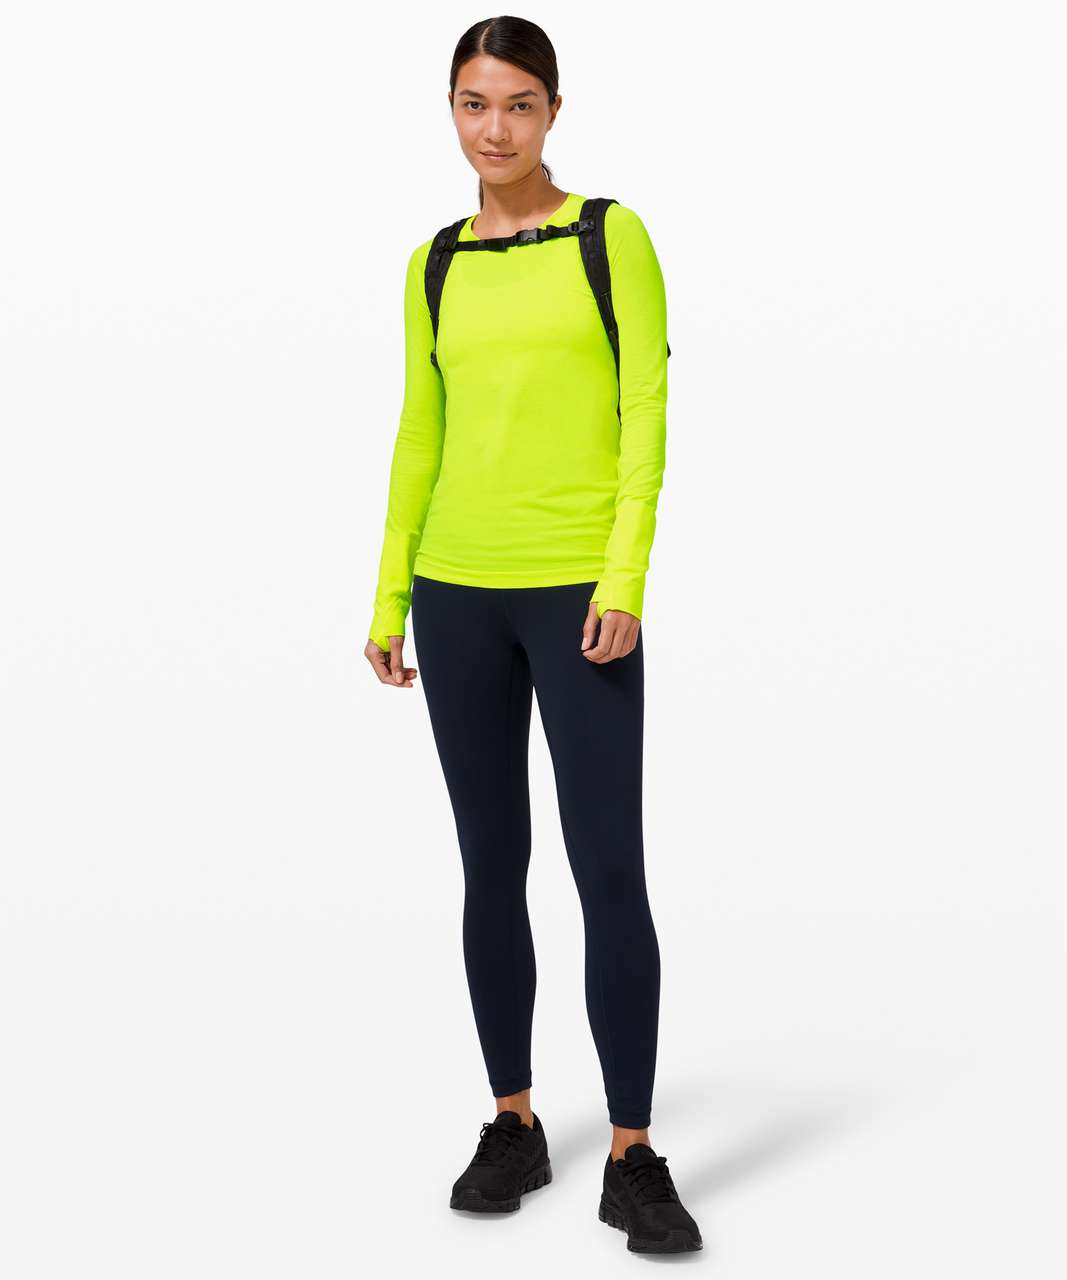 Lululemon Swiftly Tech Long Sleeve 2.0 - Highlight Yellow / Highlight Yellow